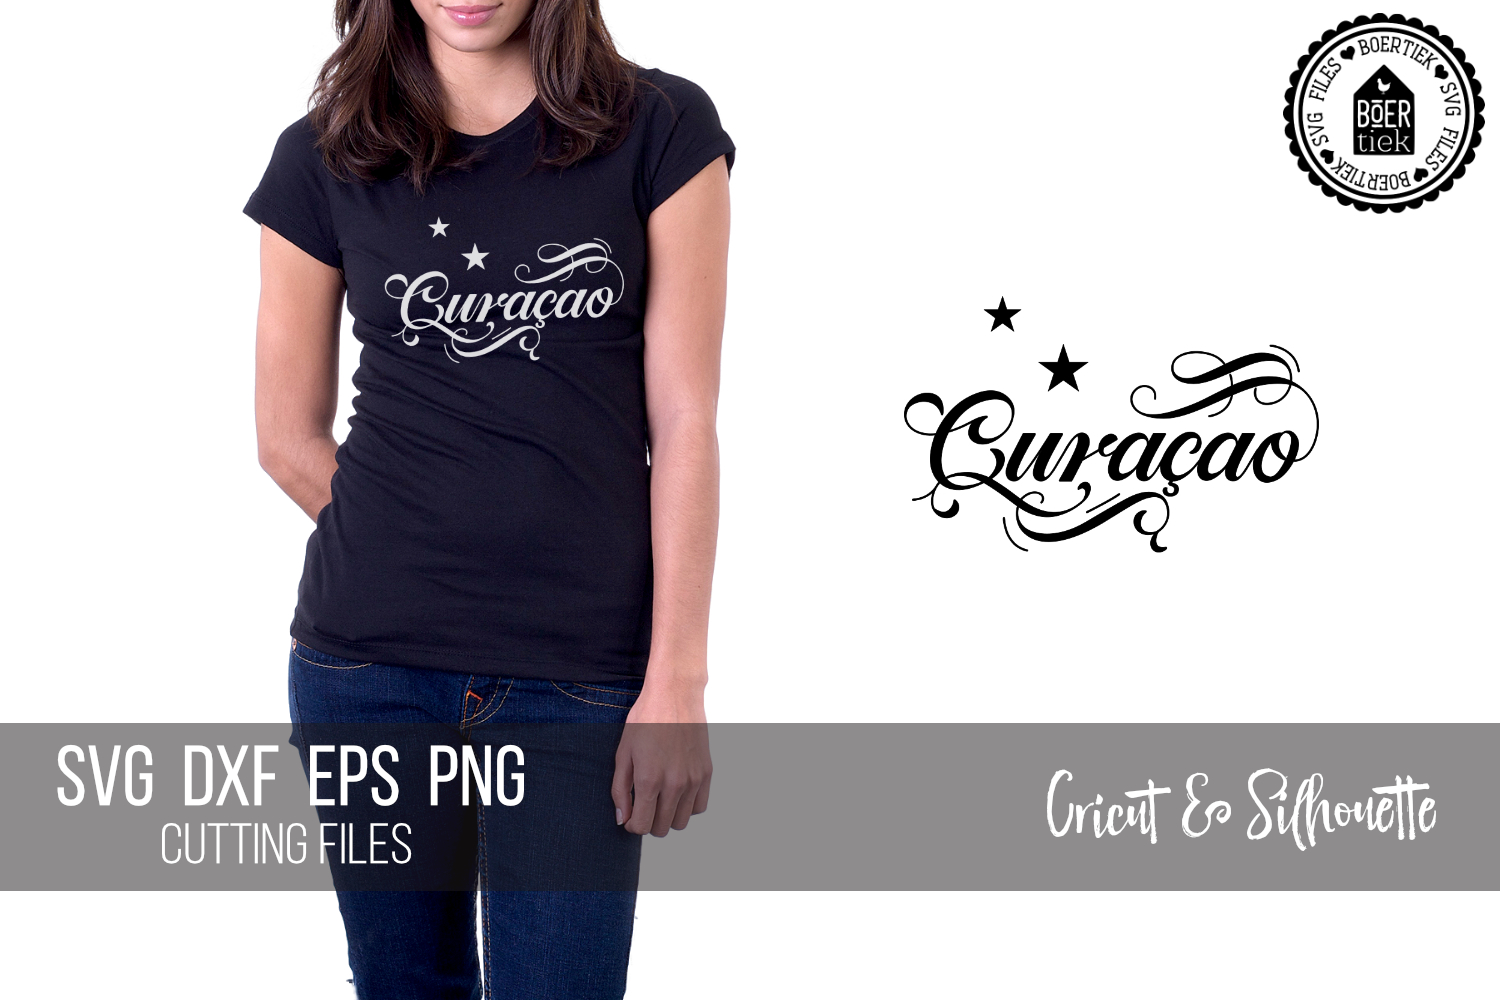 Download Free Curacao With Stars Of The Flag Graphic By Boertiek Creative for Cricut Explore, Silhouette and other cutting machines.